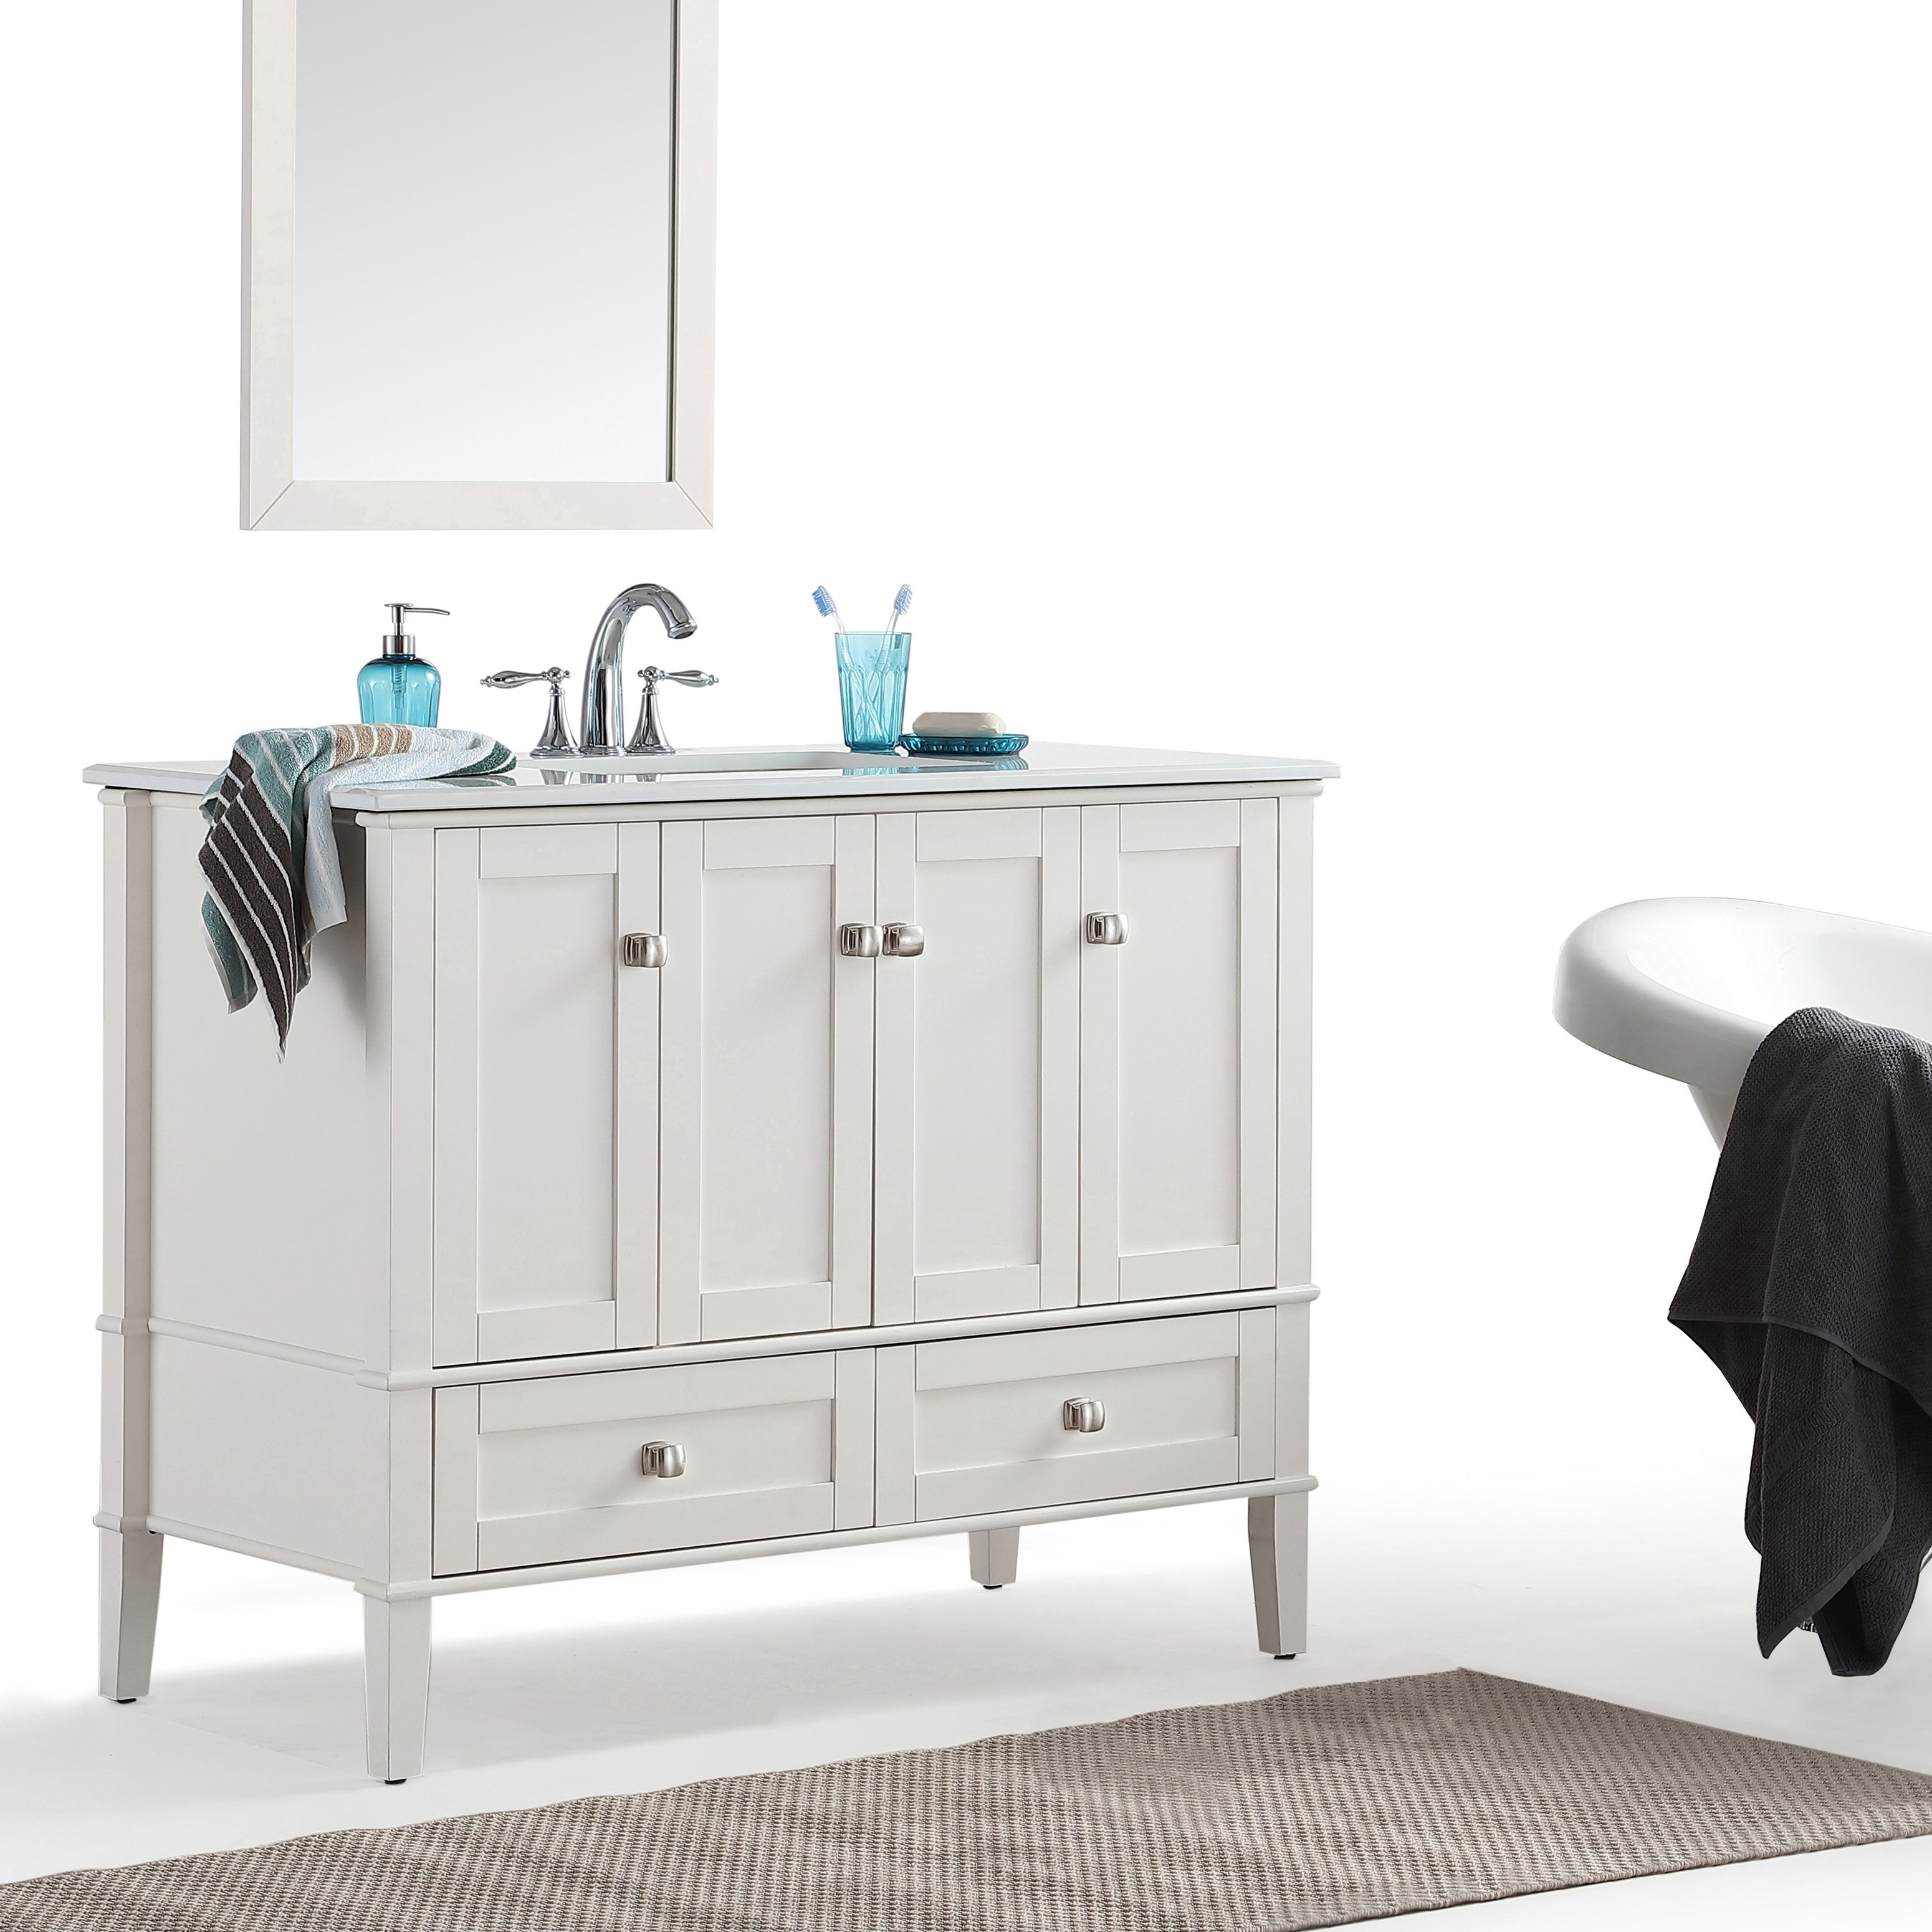 Shop windham 42 inch bath vanity in soft white with white engineered quartz marble top free shipping today overstock com 13983337